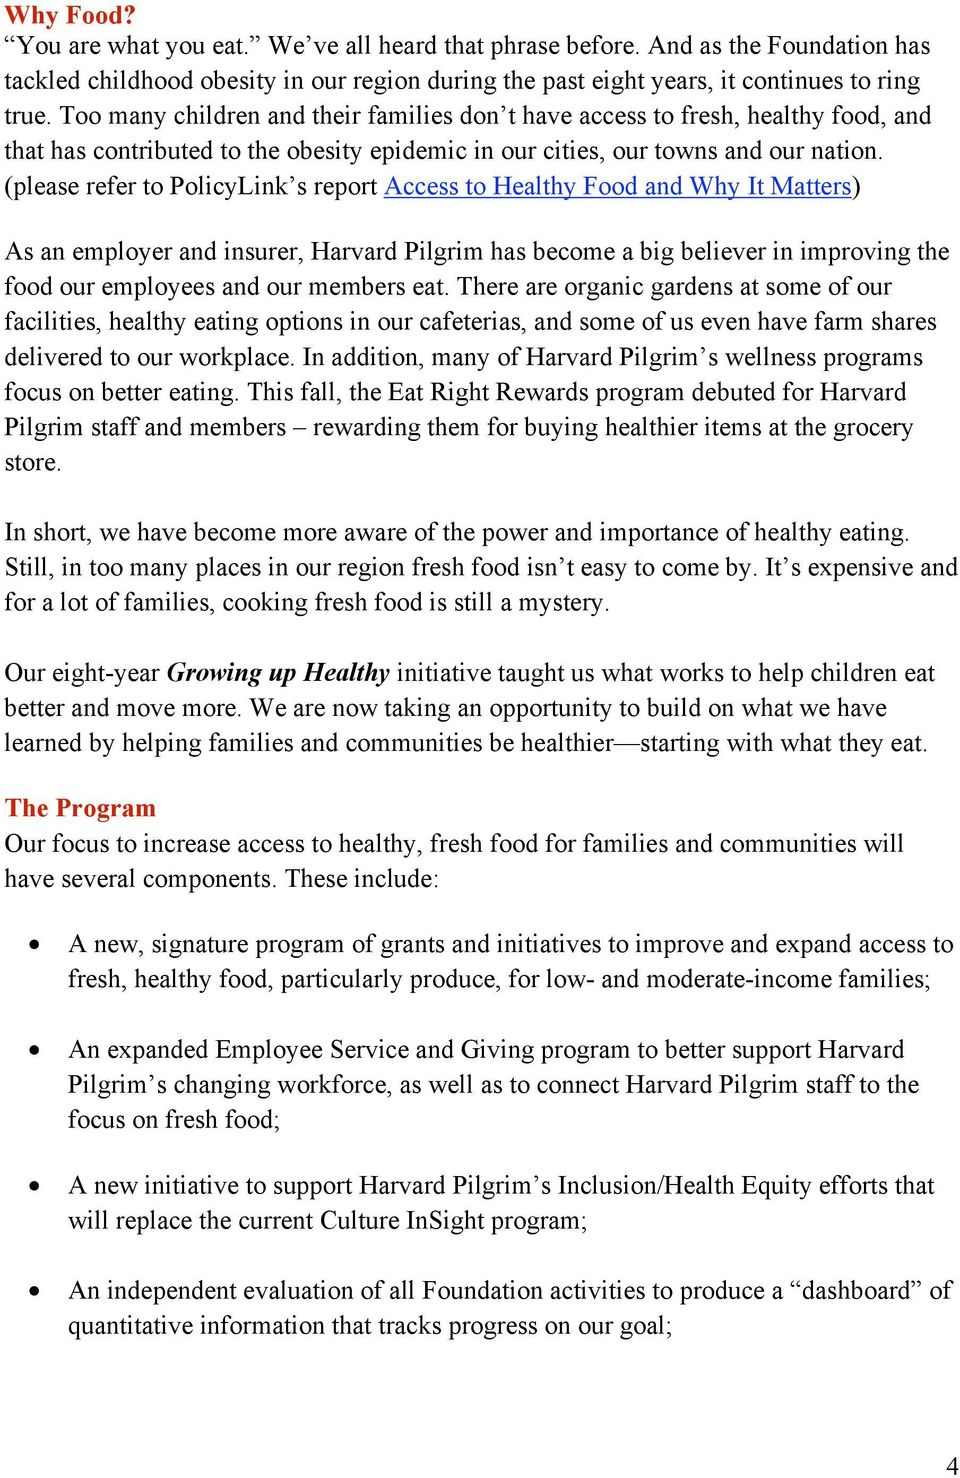 (please refer to PolicyLink s report Access to Healthy Food and Why It Matters) As an employer and insurer, Harvard Pilgrim has become a big believer in improving the food our employees and our